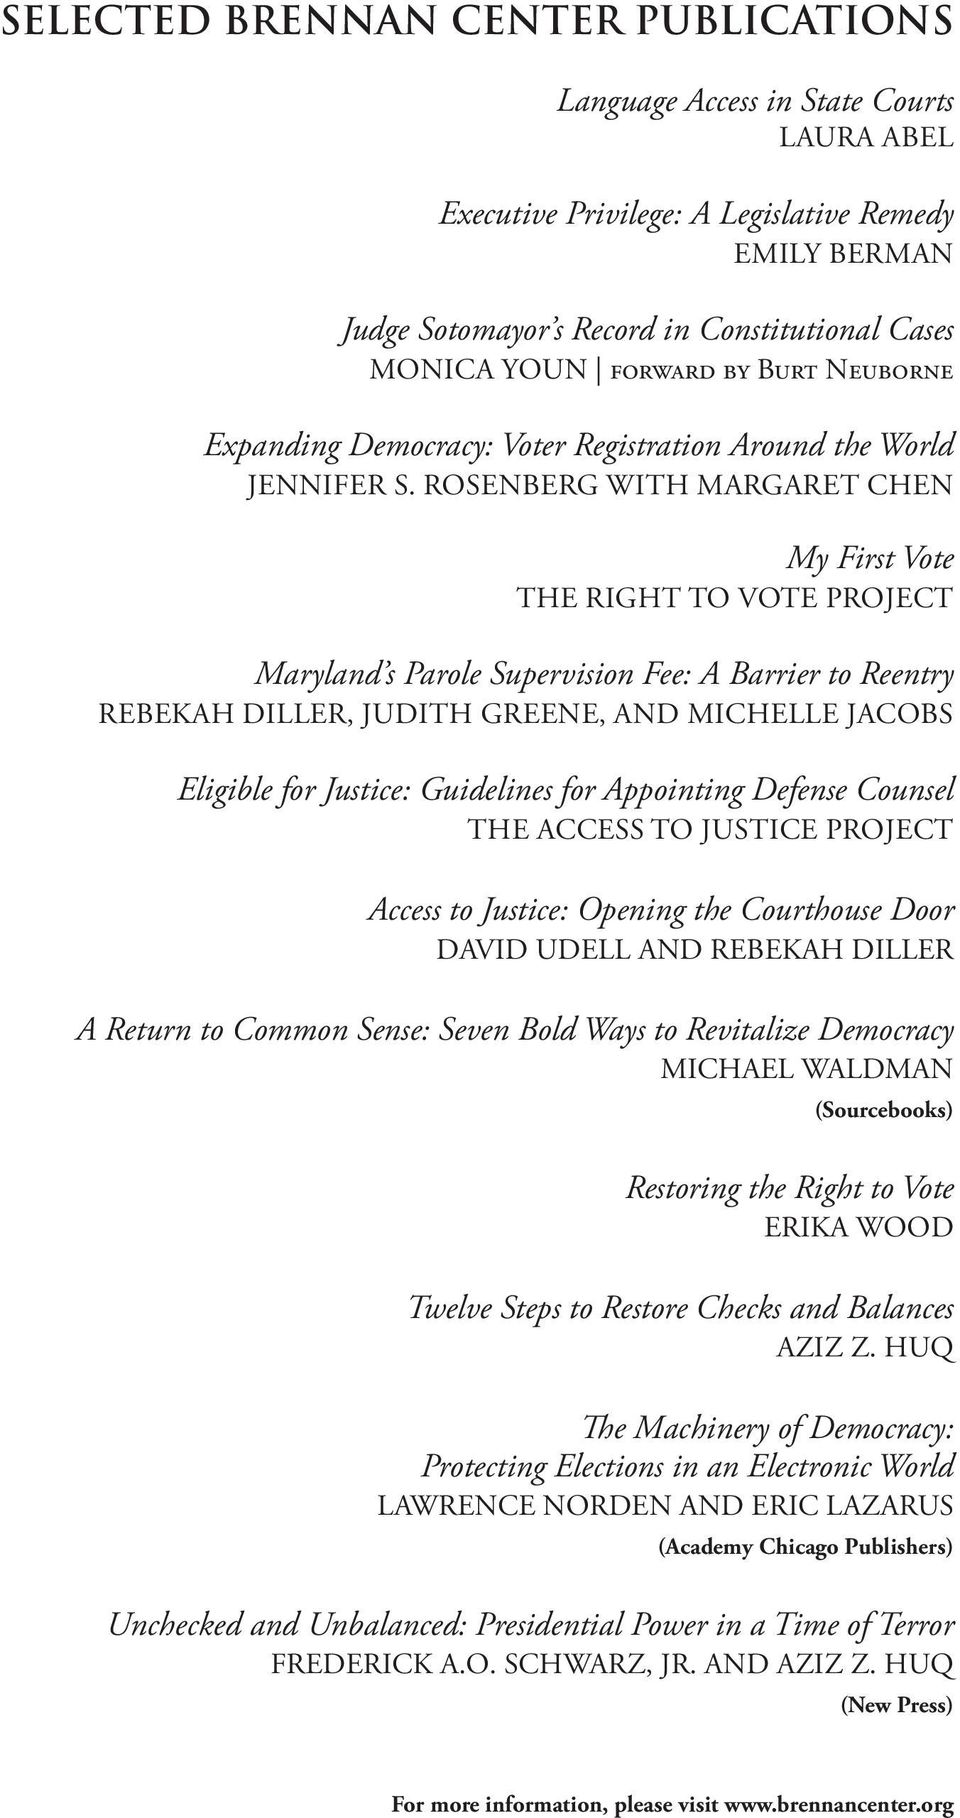 ROSENBERG WITH MARGARET CHEN My First Vote THE RIGHT TO VOTE PROJECT Maryland s Parole Supervision Fee: A Barrier to Reentry REBEKAH DILLER, JUDITH GREENE, AND MICHELLE JACOBS Eligible for Justice: